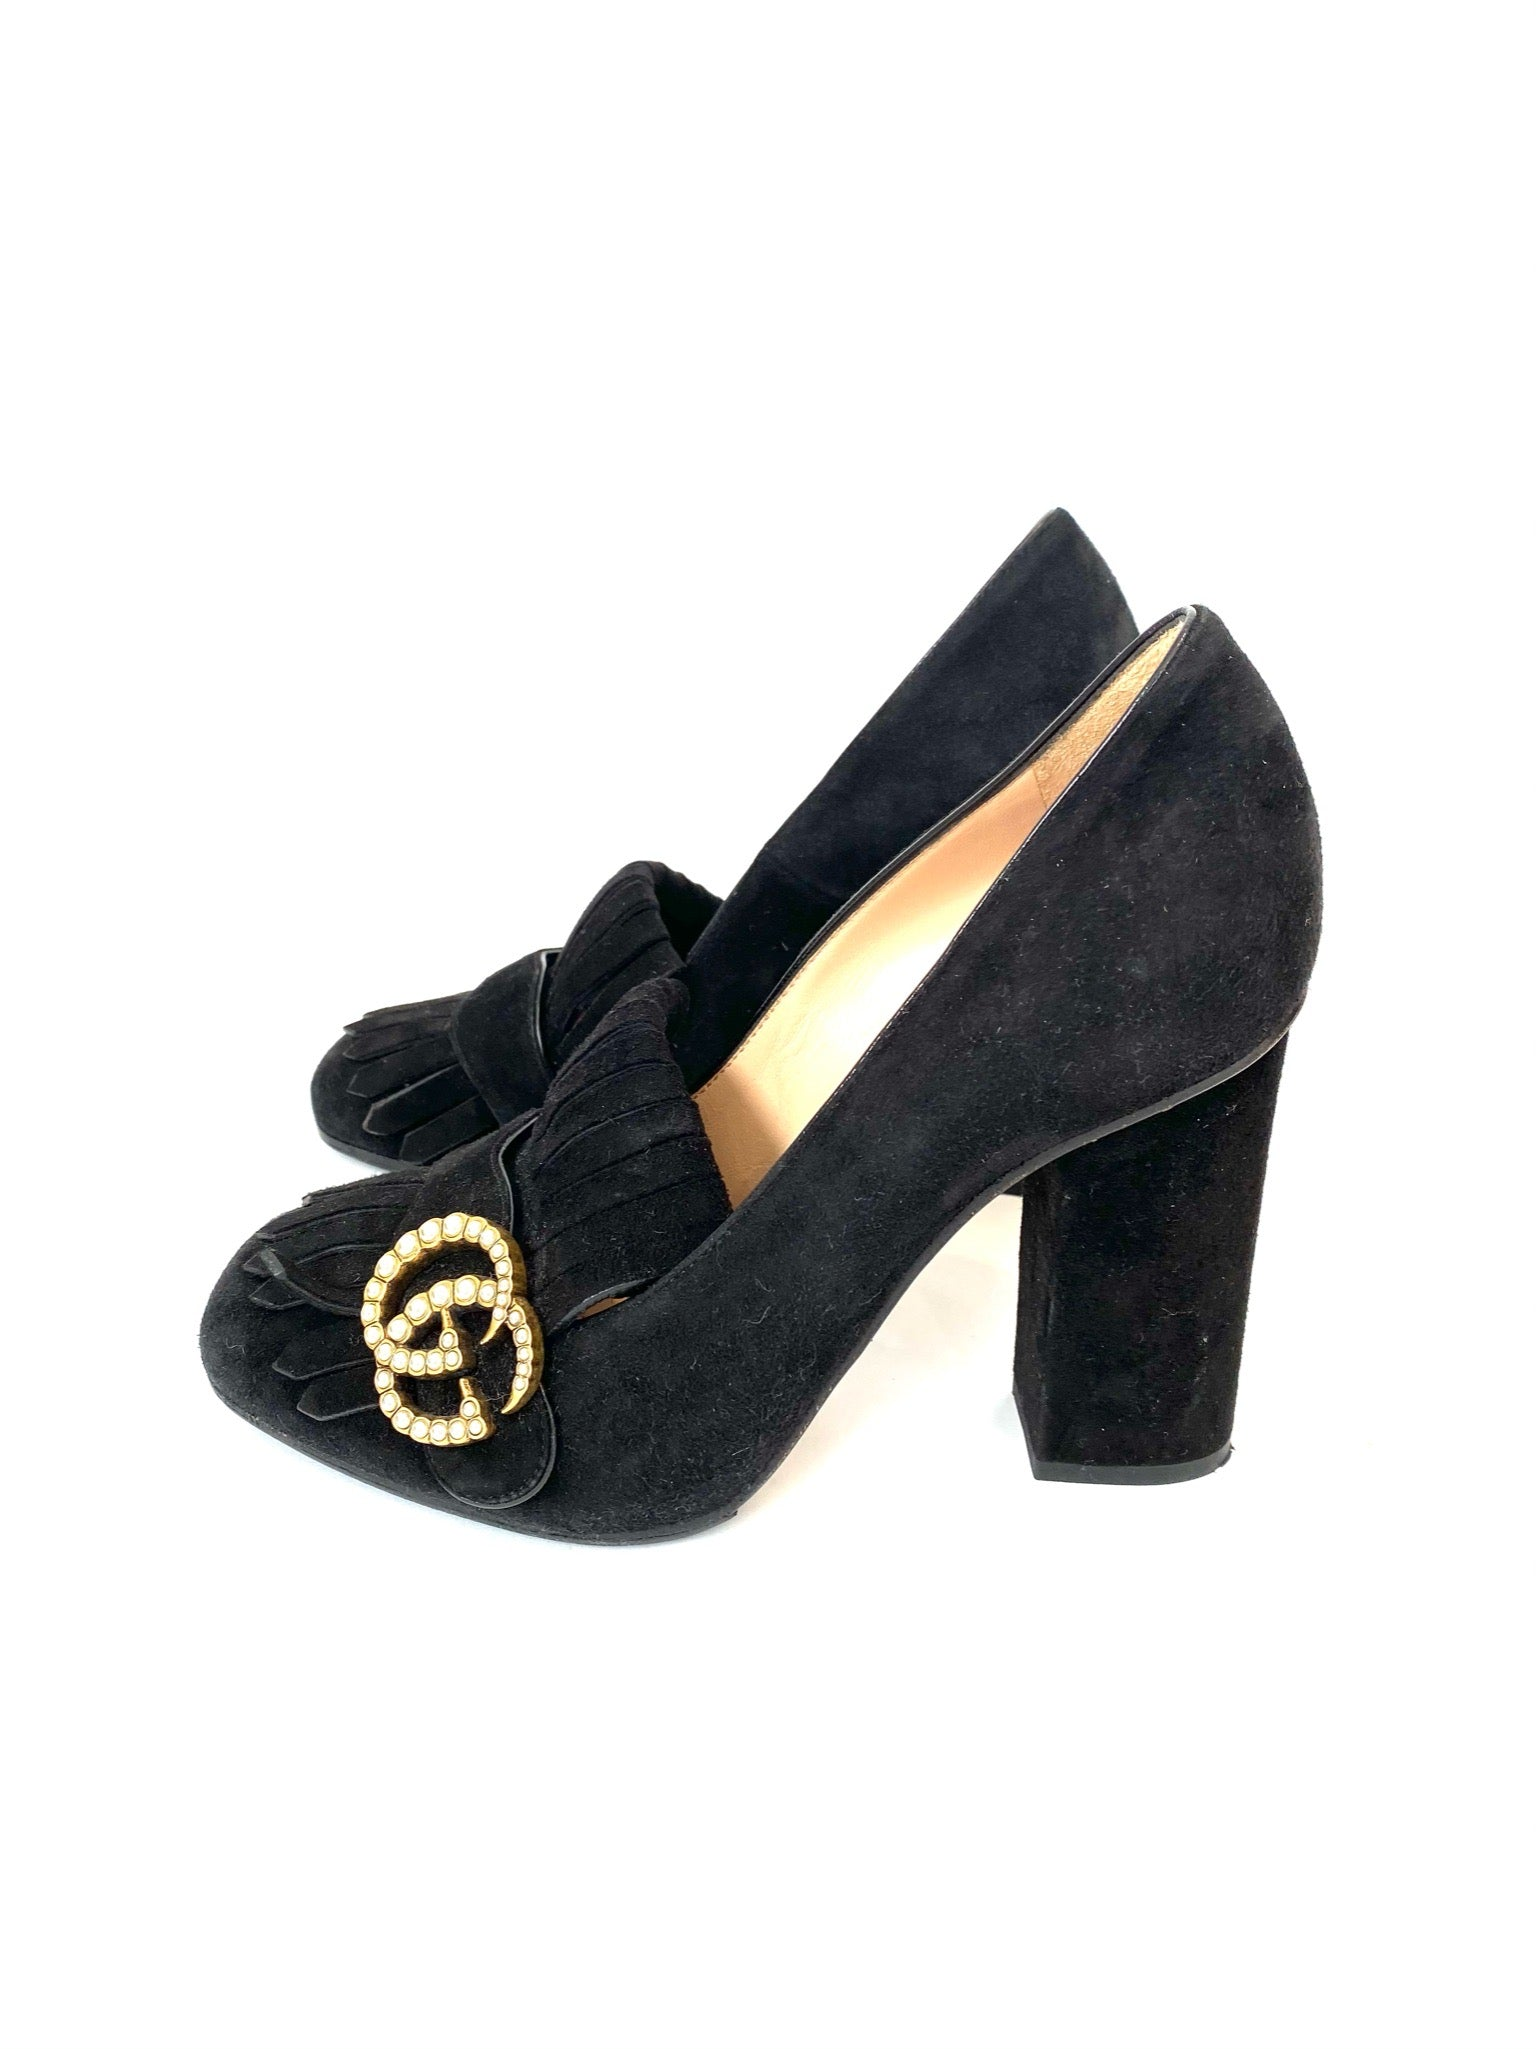 Gucci Black Suede Pumps with Pearls Size 36